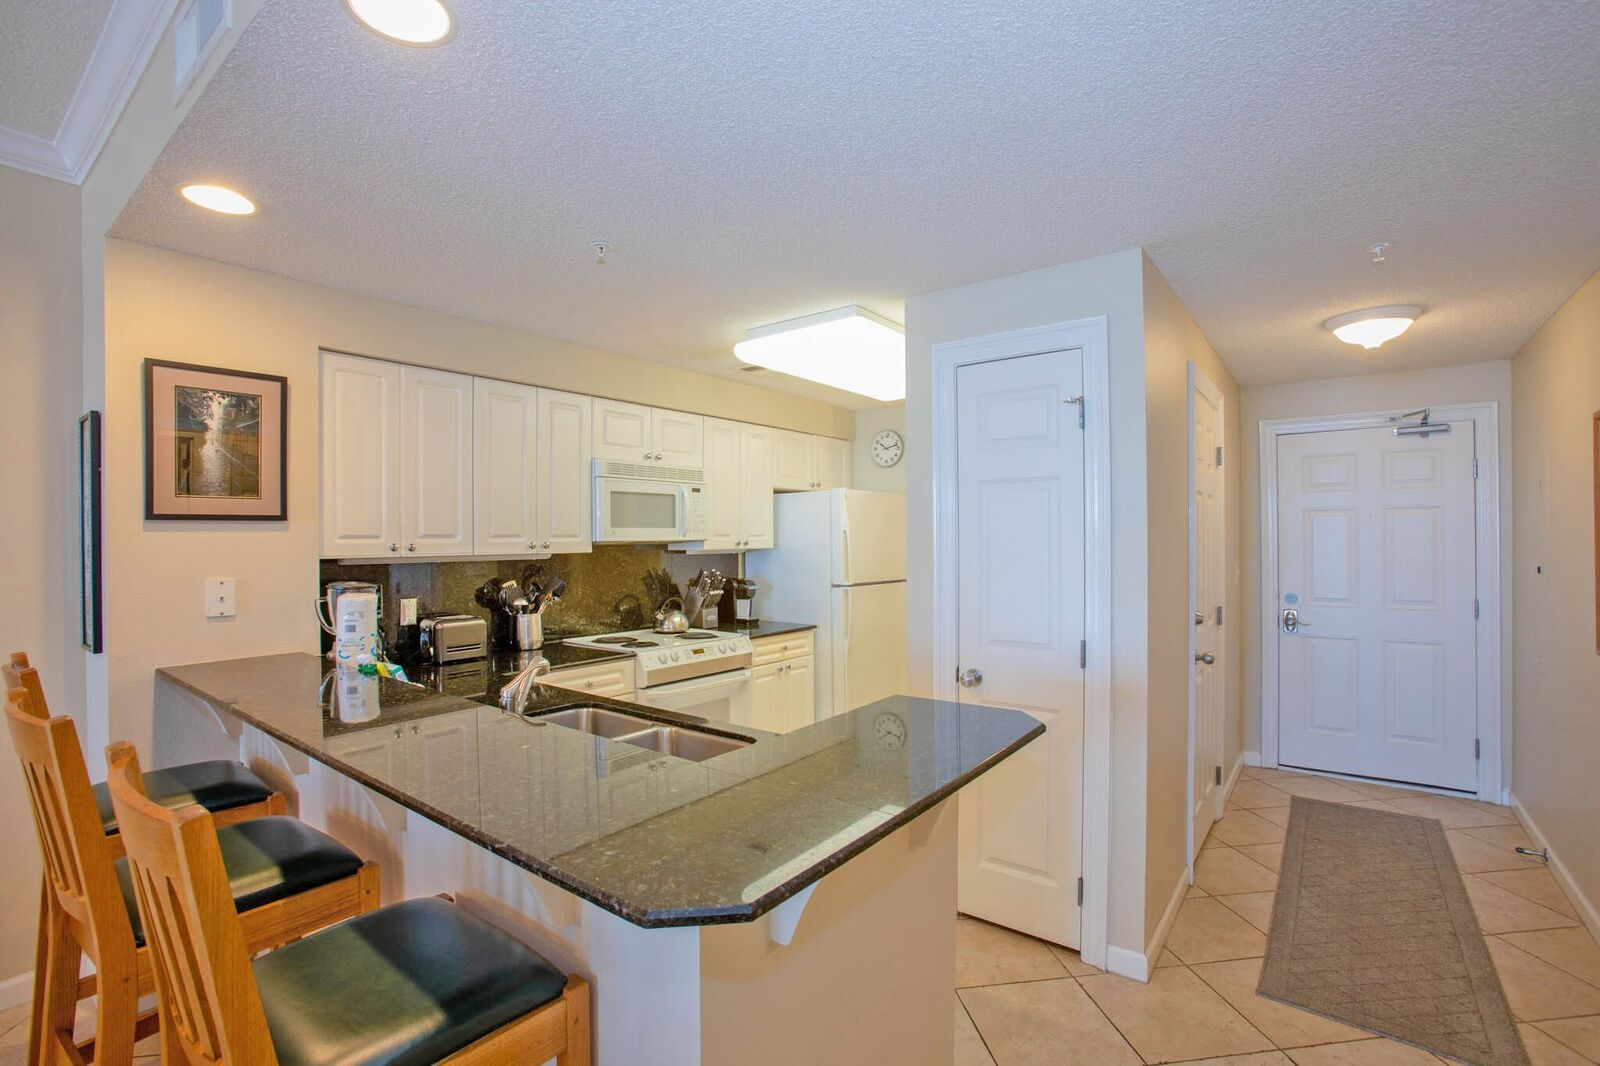 The Pearl of Navarre #504 Condo rental in The Pearl of Navarre Beach in Navarre Florida - #5